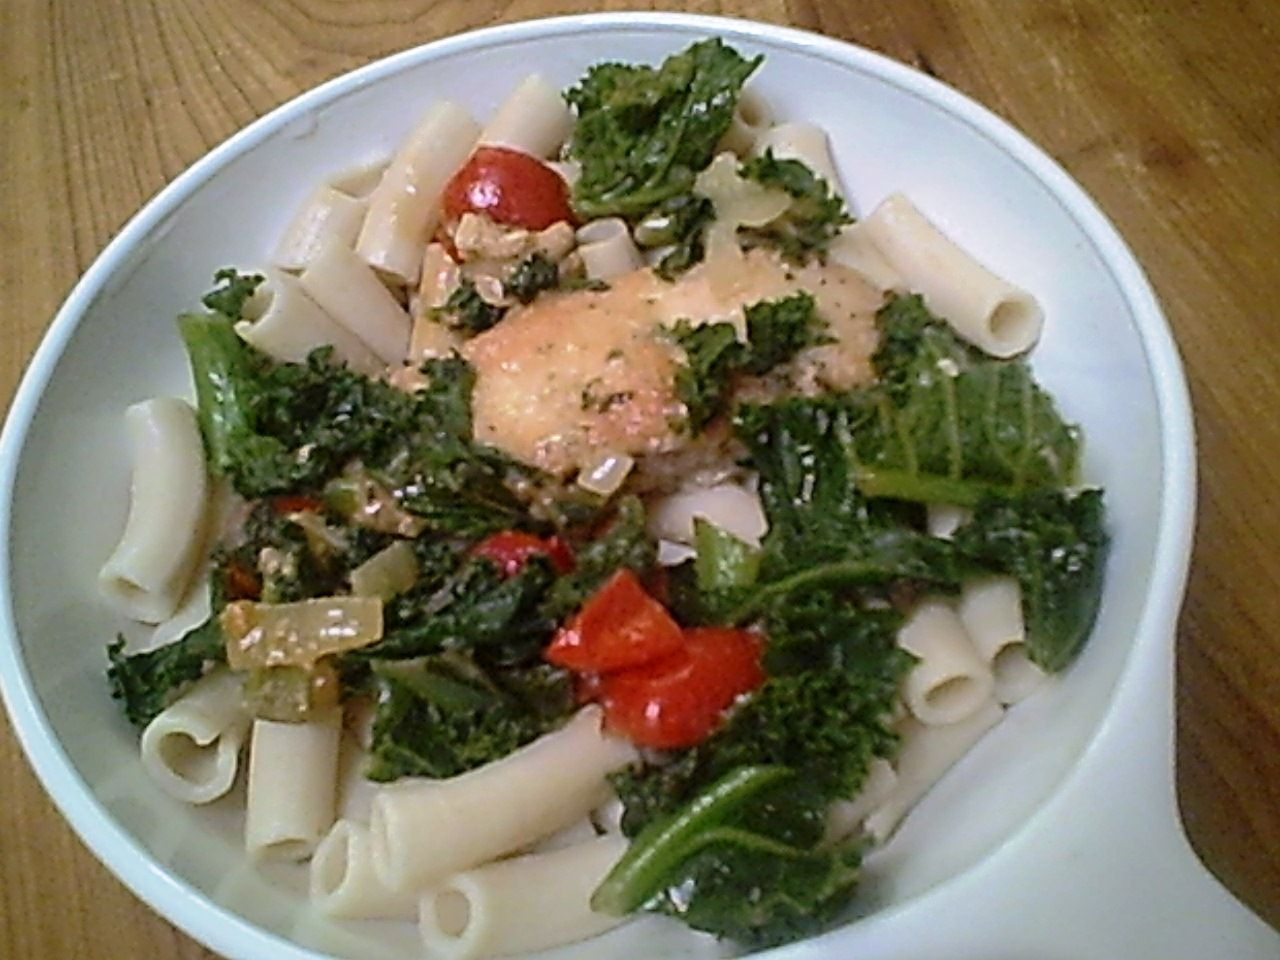 Chicken strips, red tomatoes, green kale and cream-colored pasta – I like how an easy chicken dinner can have such eye appeal. Some people who won't normally...